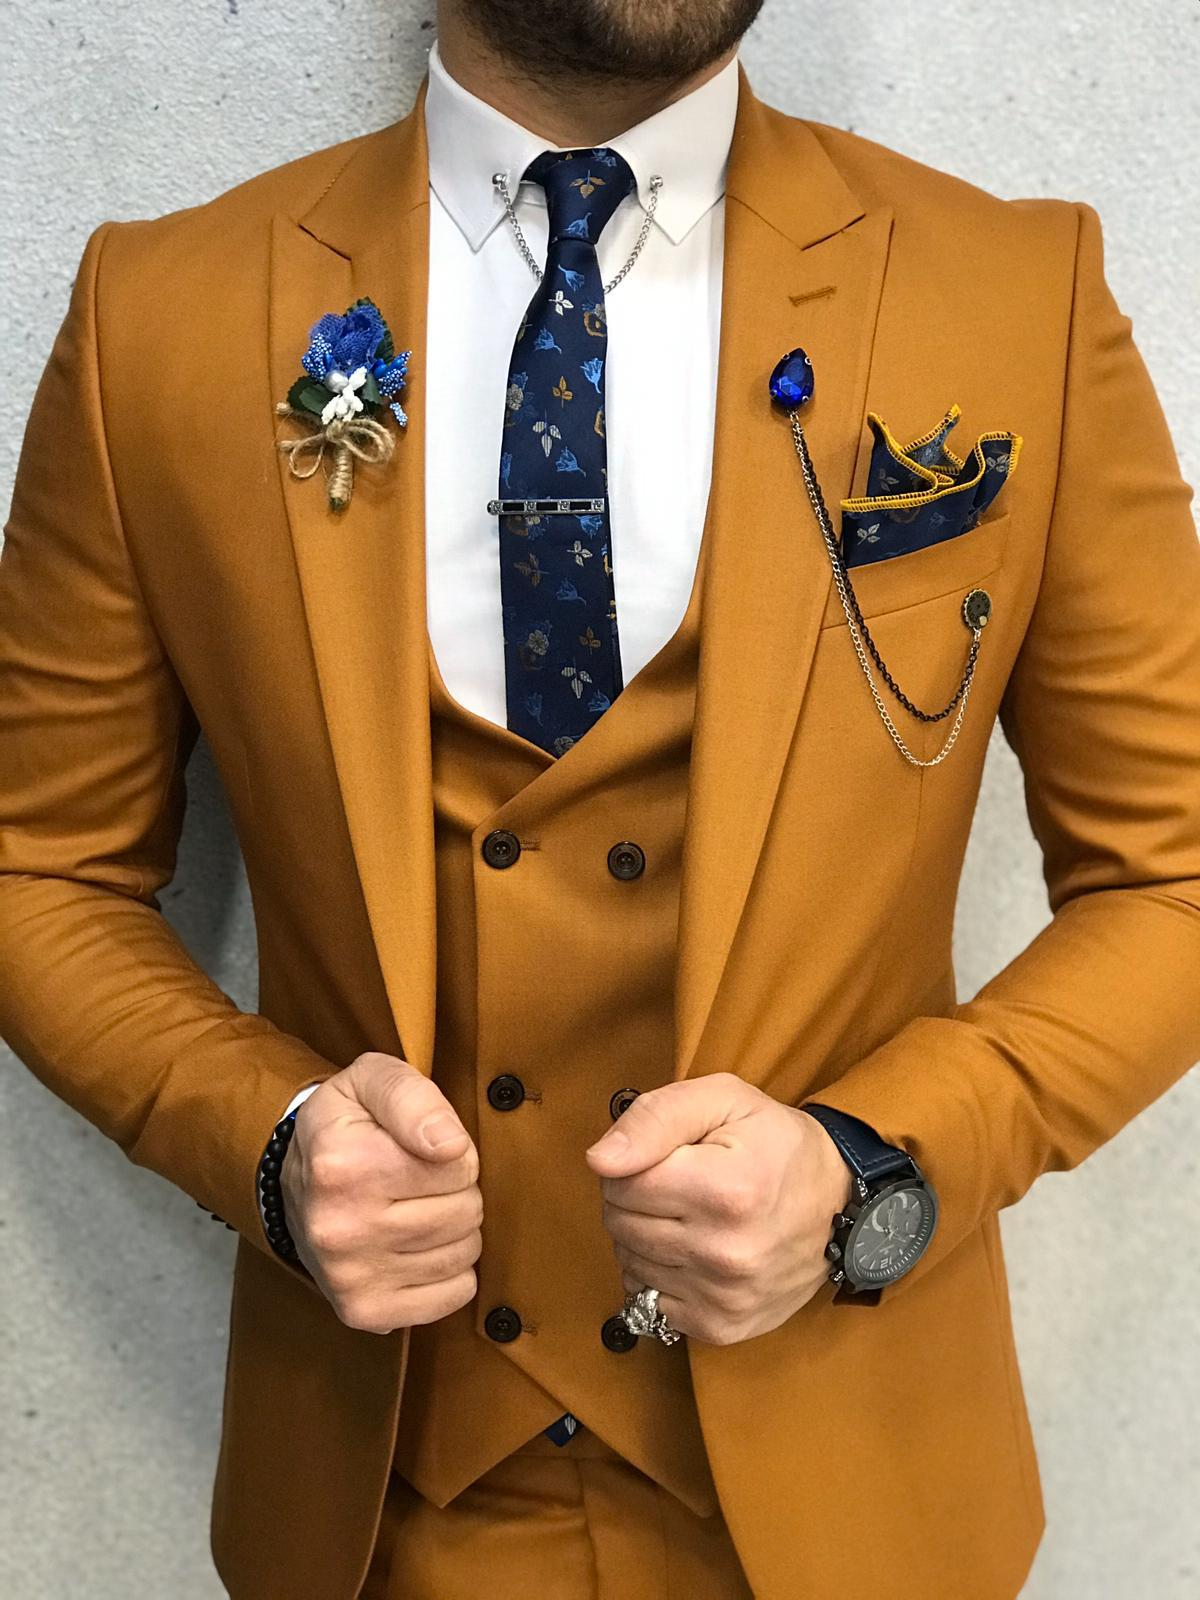 Groom's Attire and Wedding Suits for Men